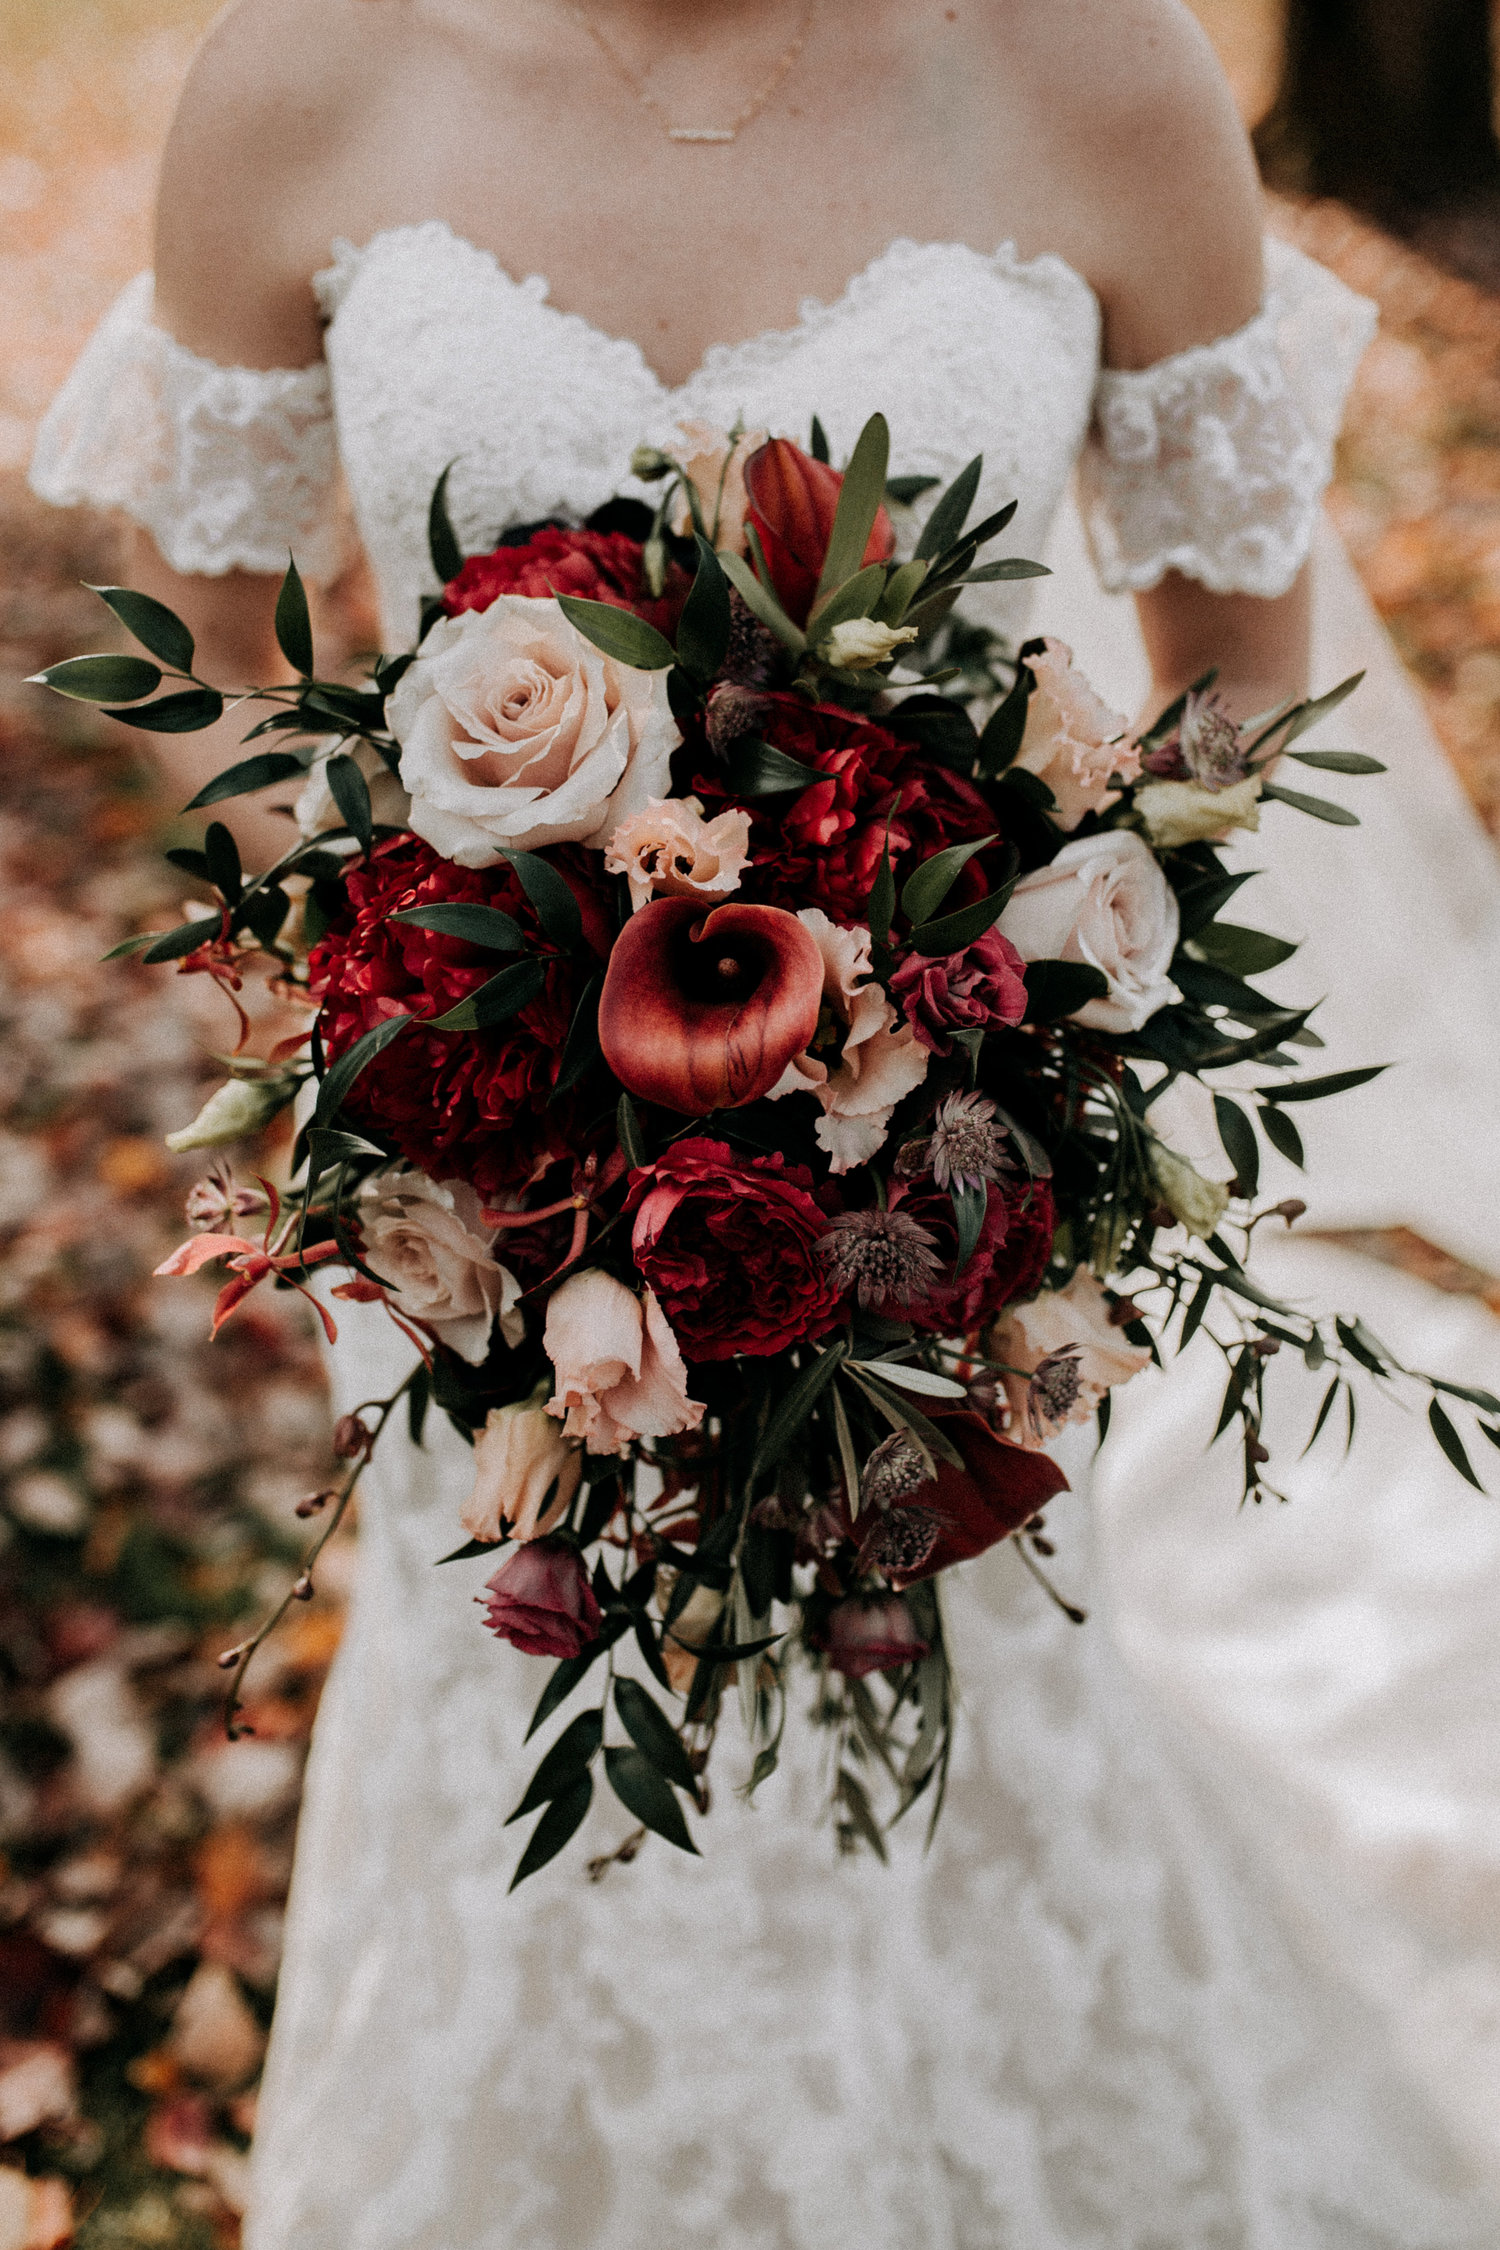 5 Rules For A Rustic But Classy Wedding Inspiration And Advice